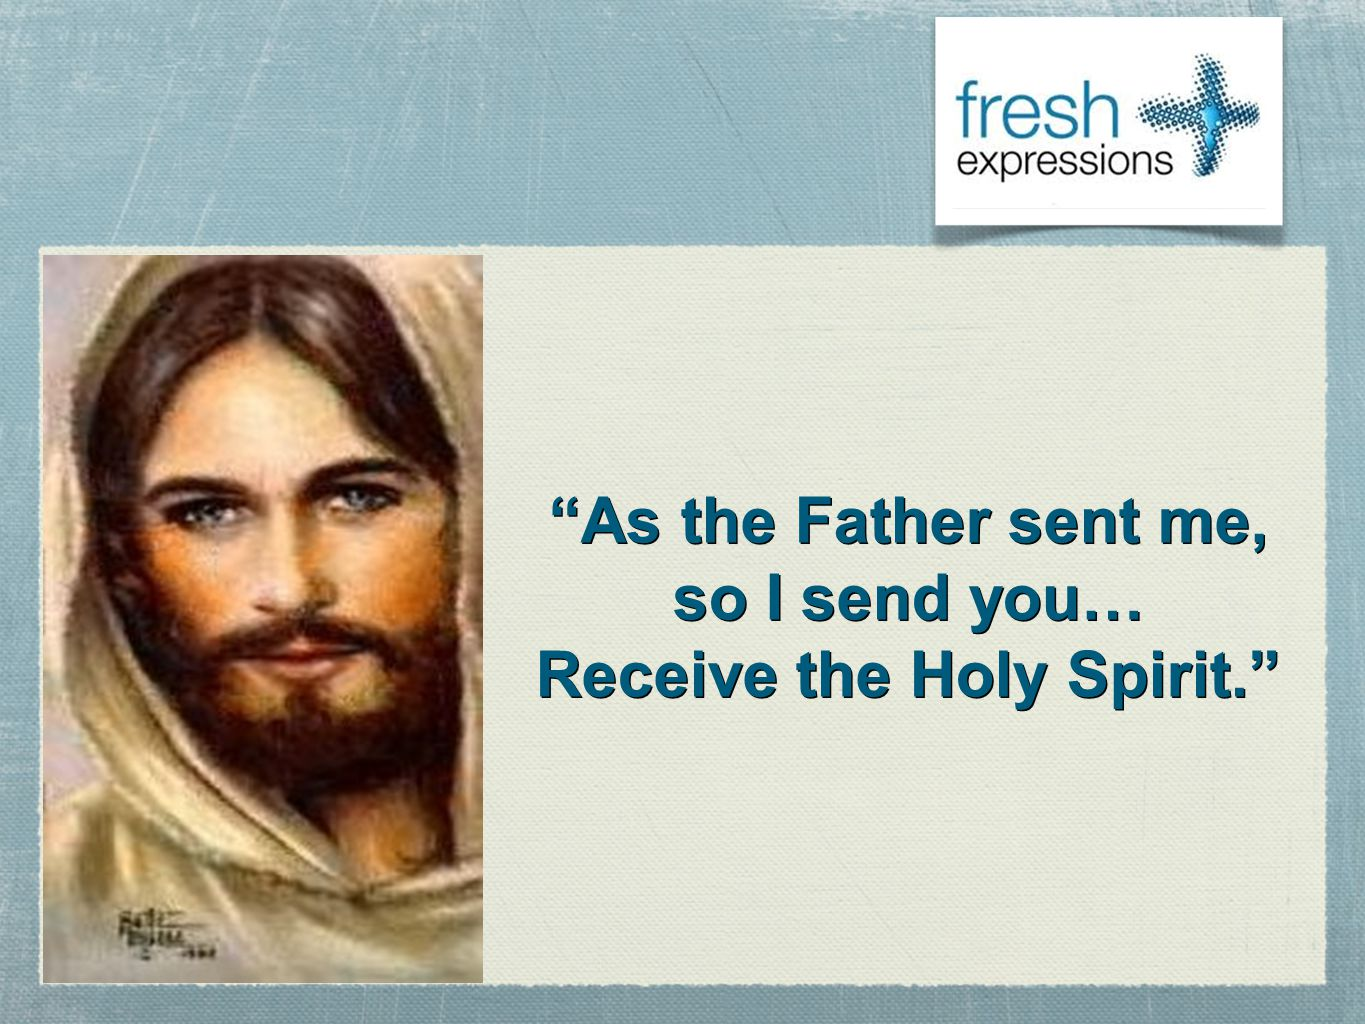 As the Father sent me, so I send you… Receive the Holy Spirit.